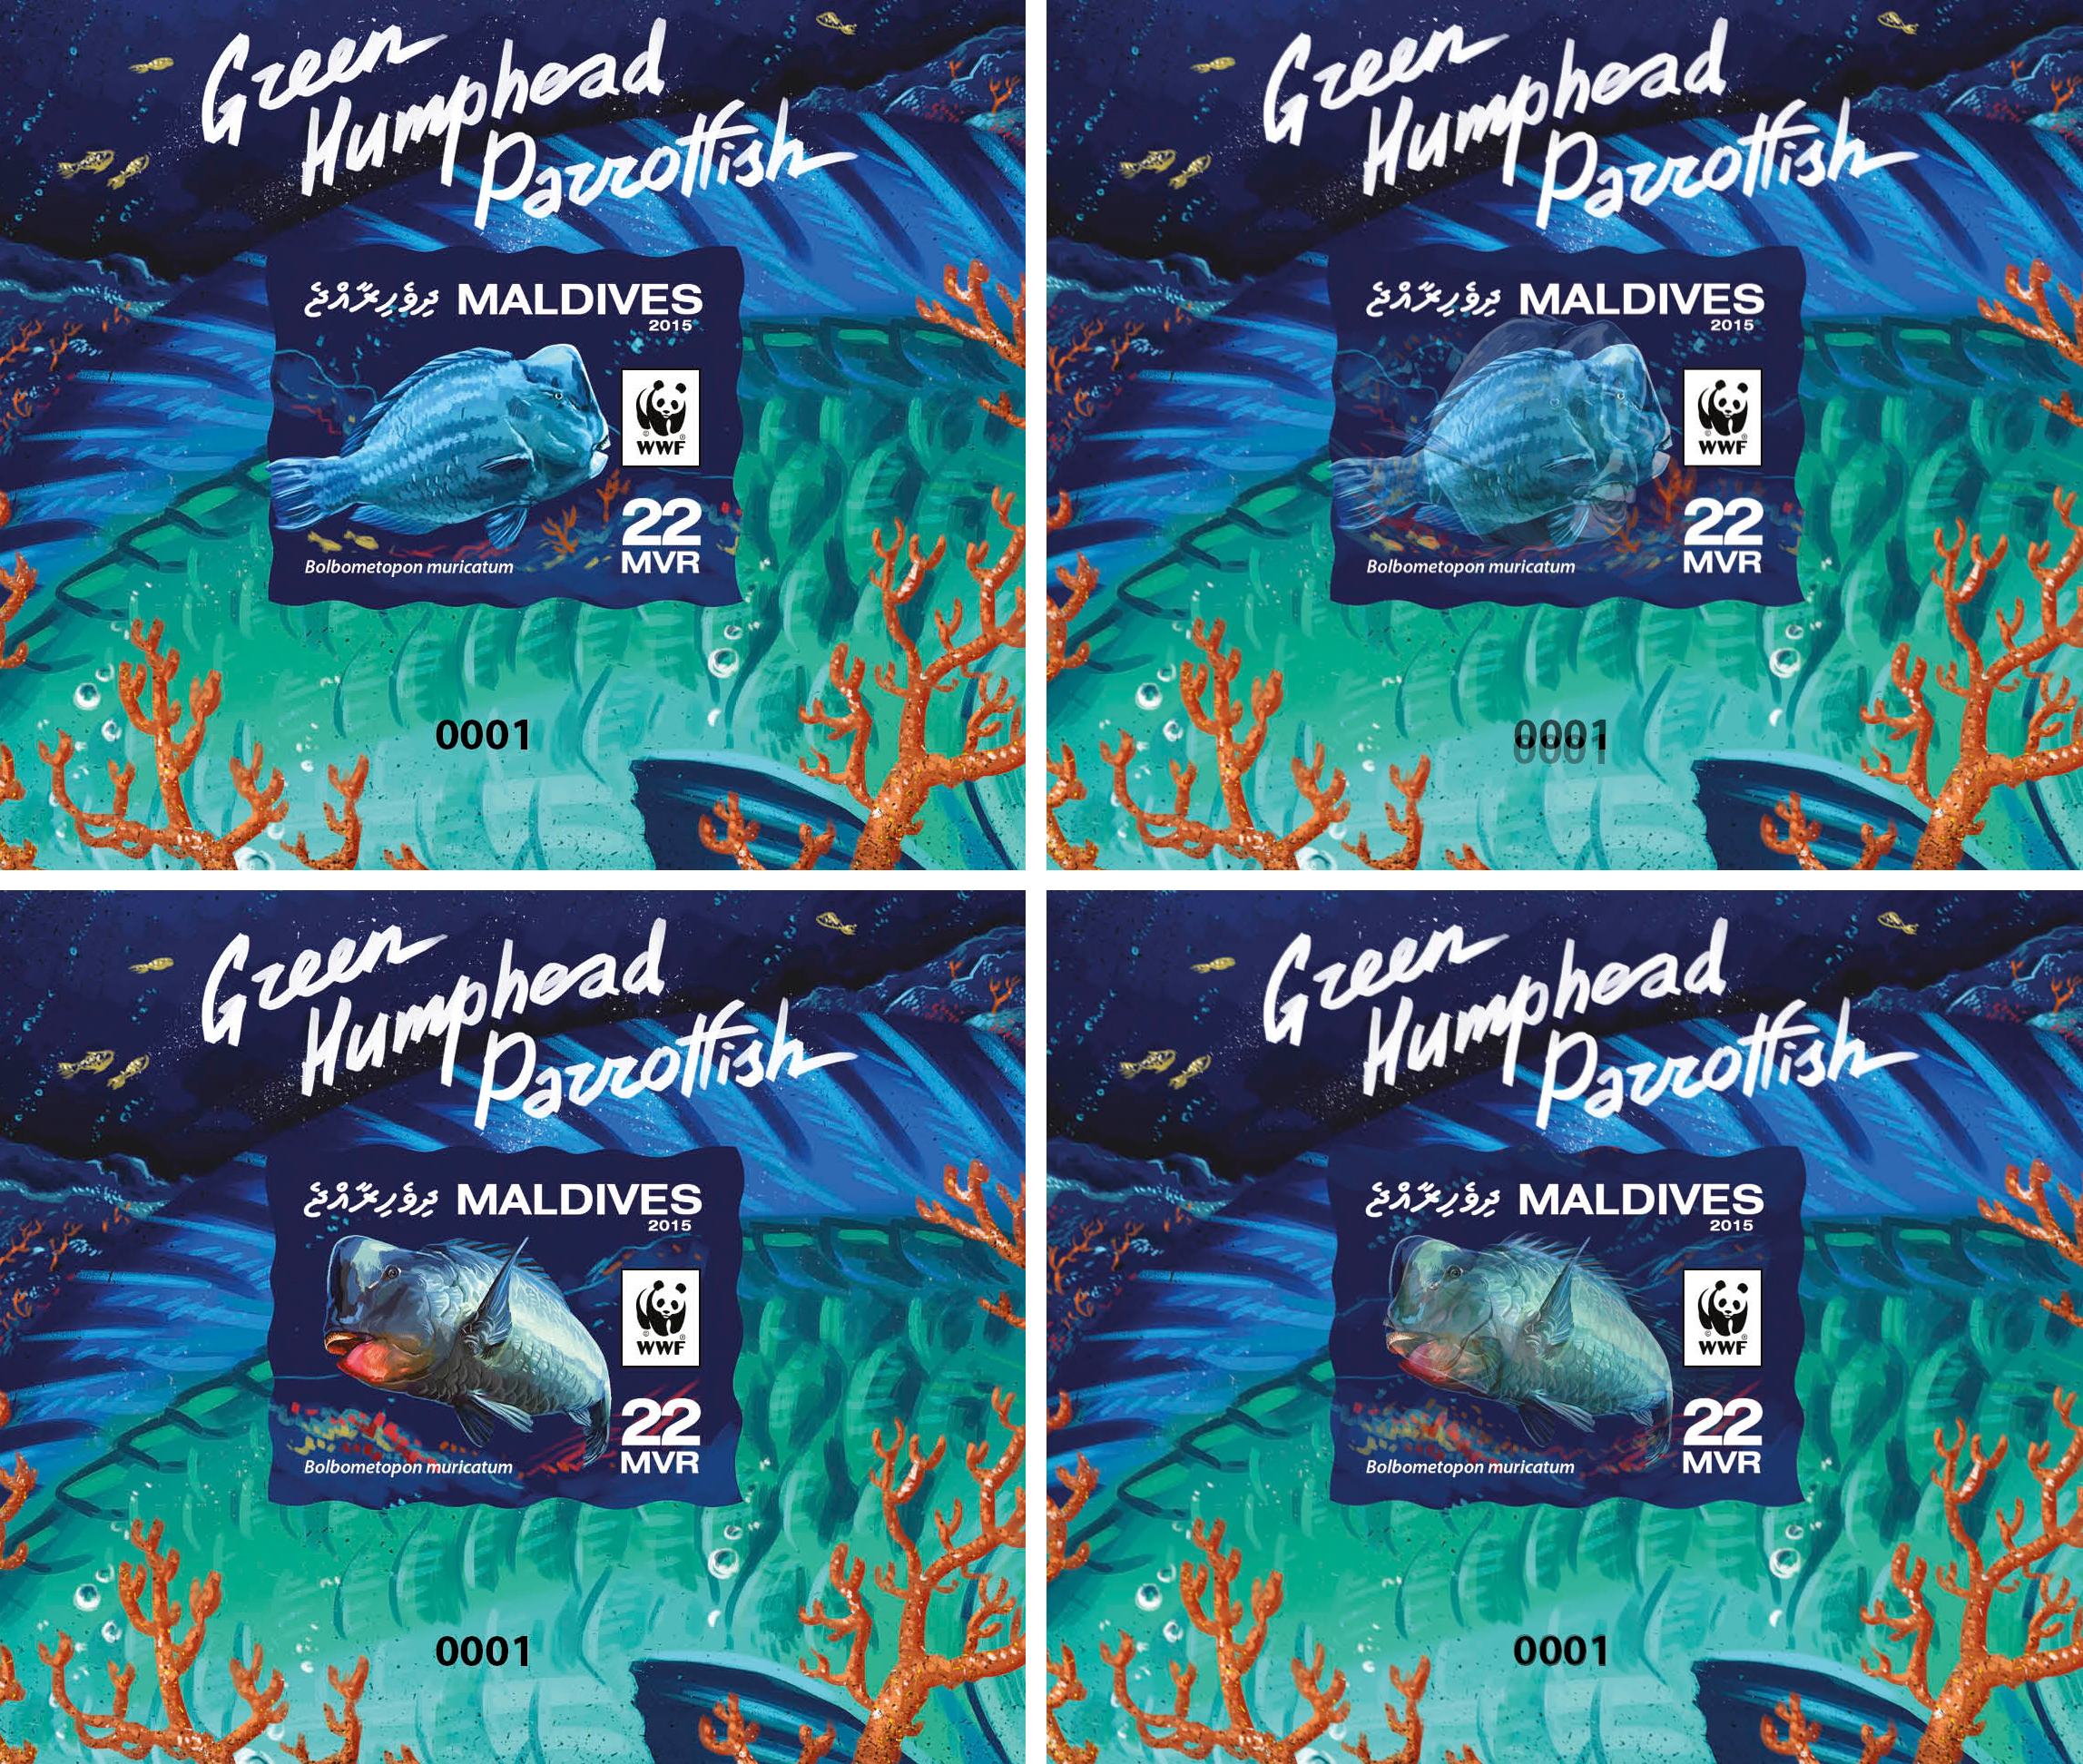 WWF – Parrotfish (imperf. 4 delux) - Issue of Maldives postage stamps